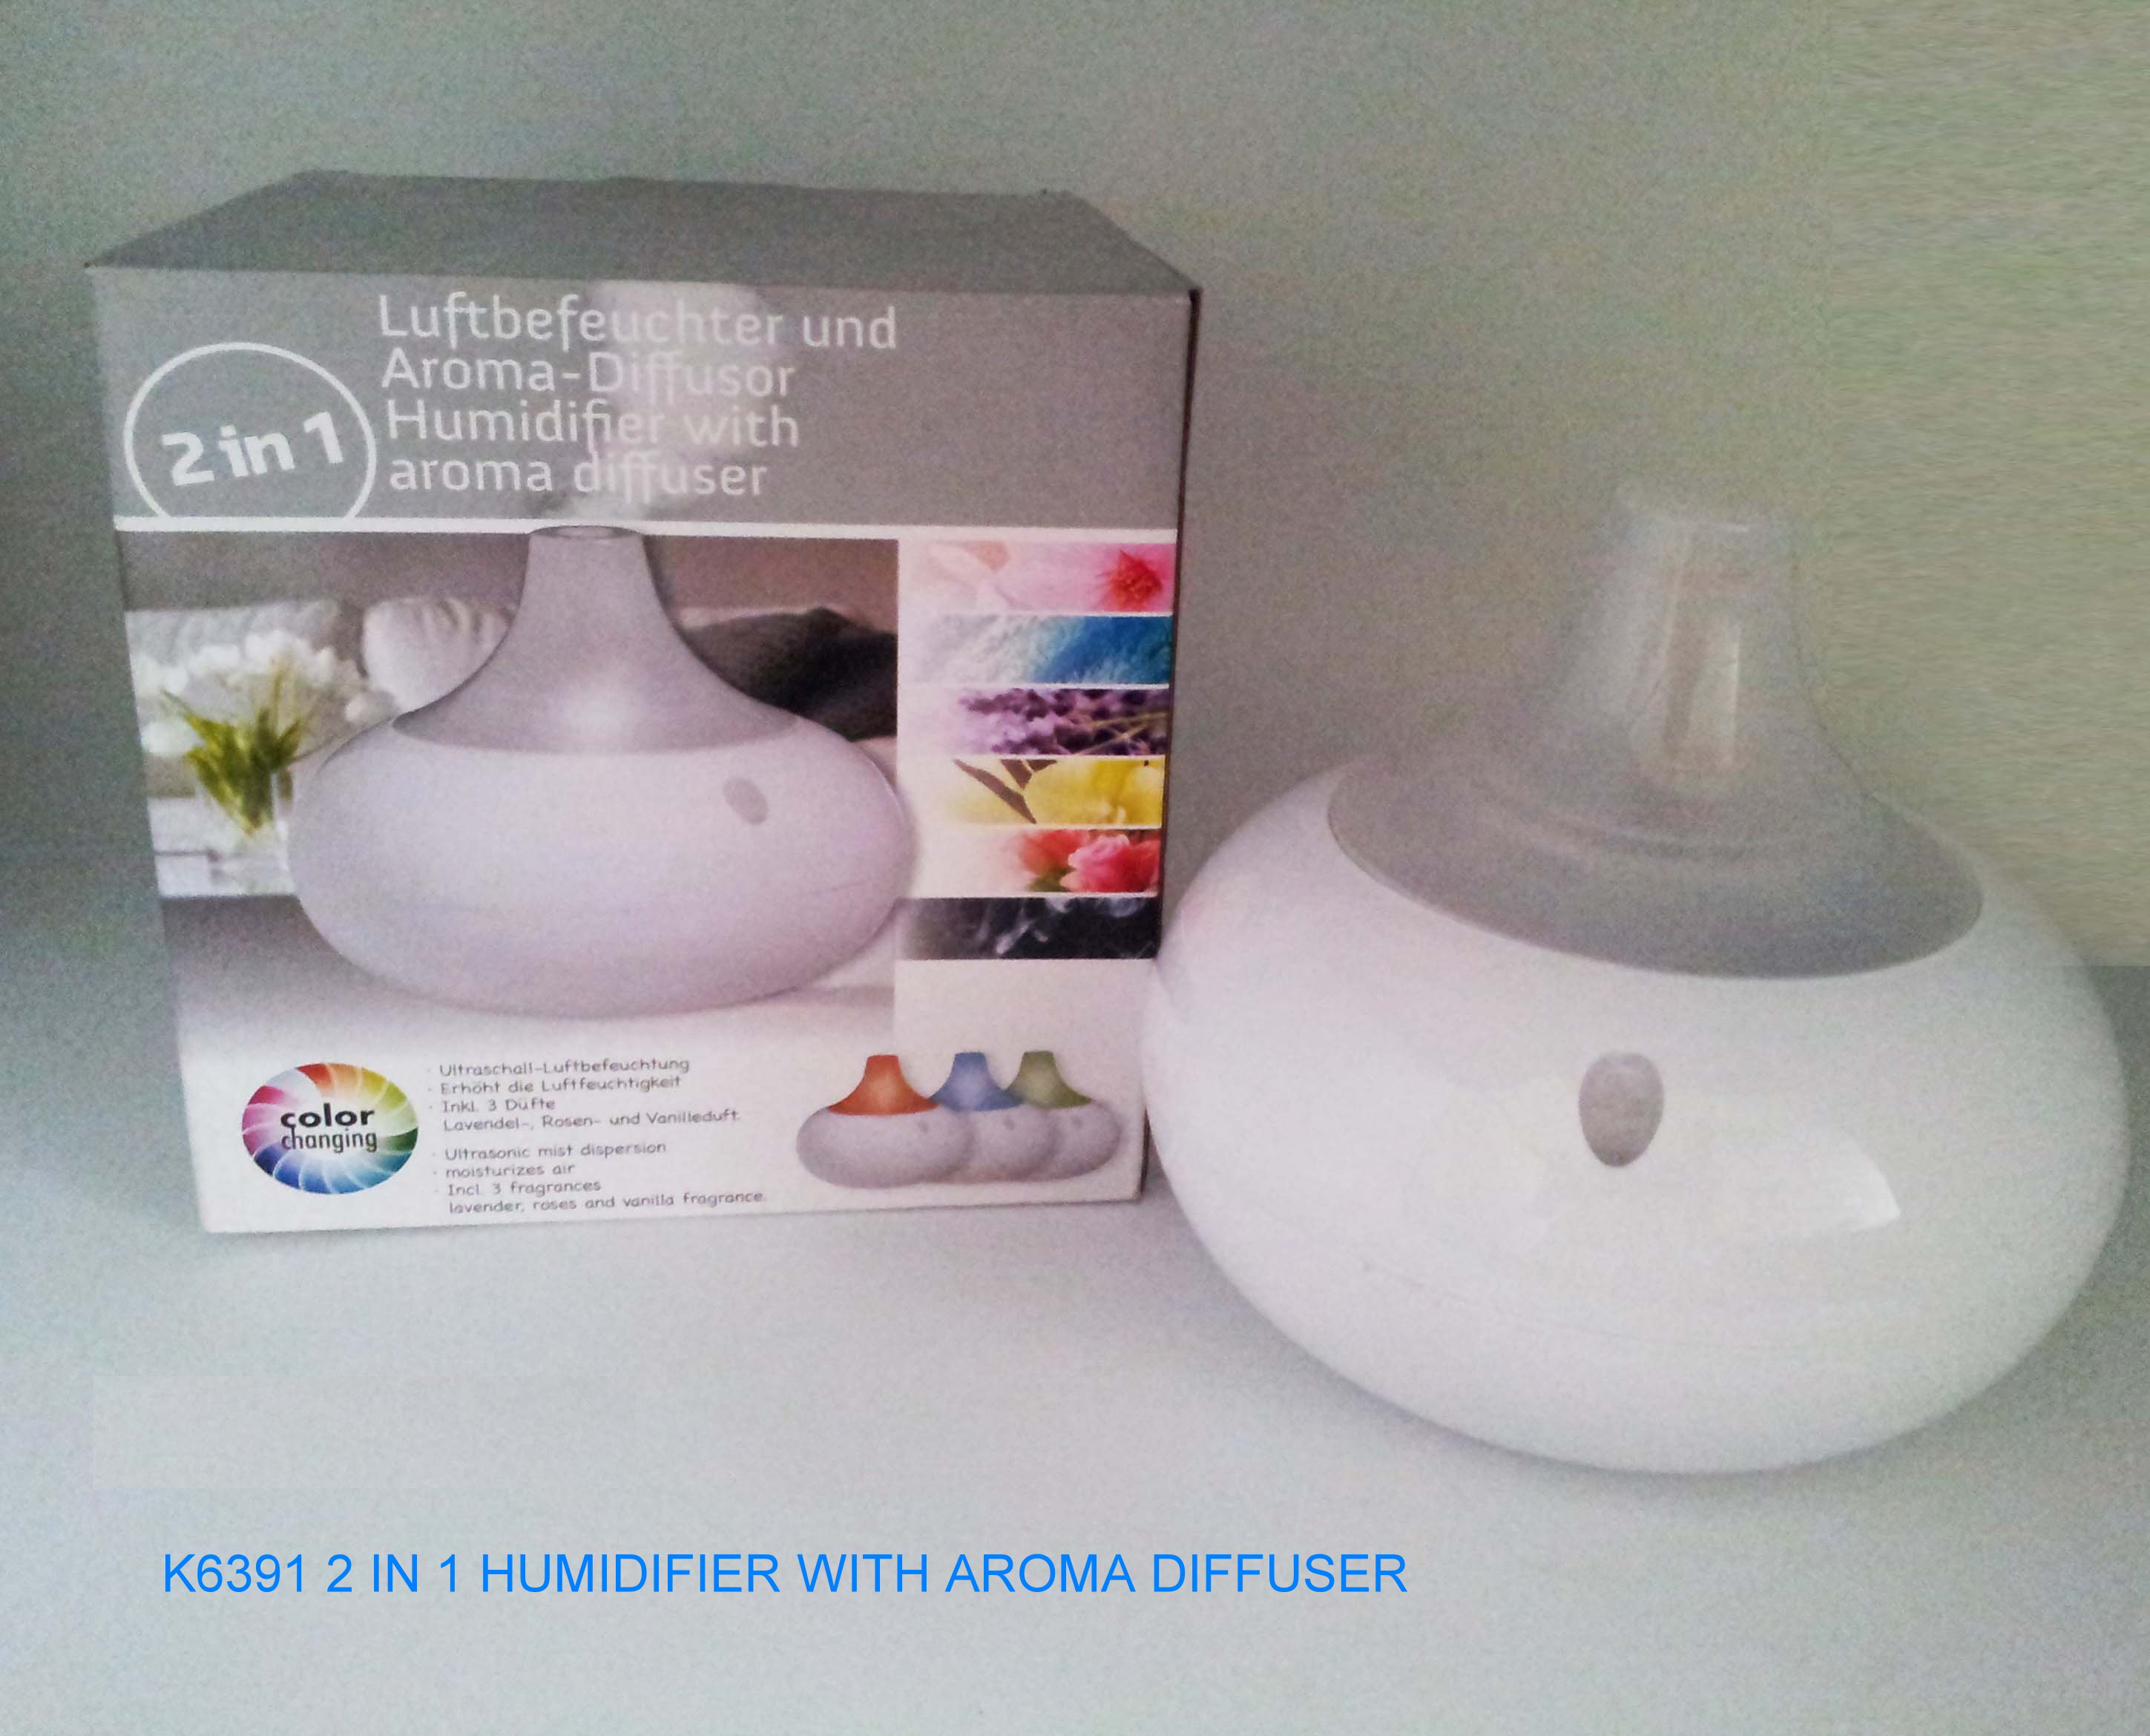 K6391 AROMA DIFFUSER & HUMIDIFIER WITH COLOUR CHANGING LIGHT.